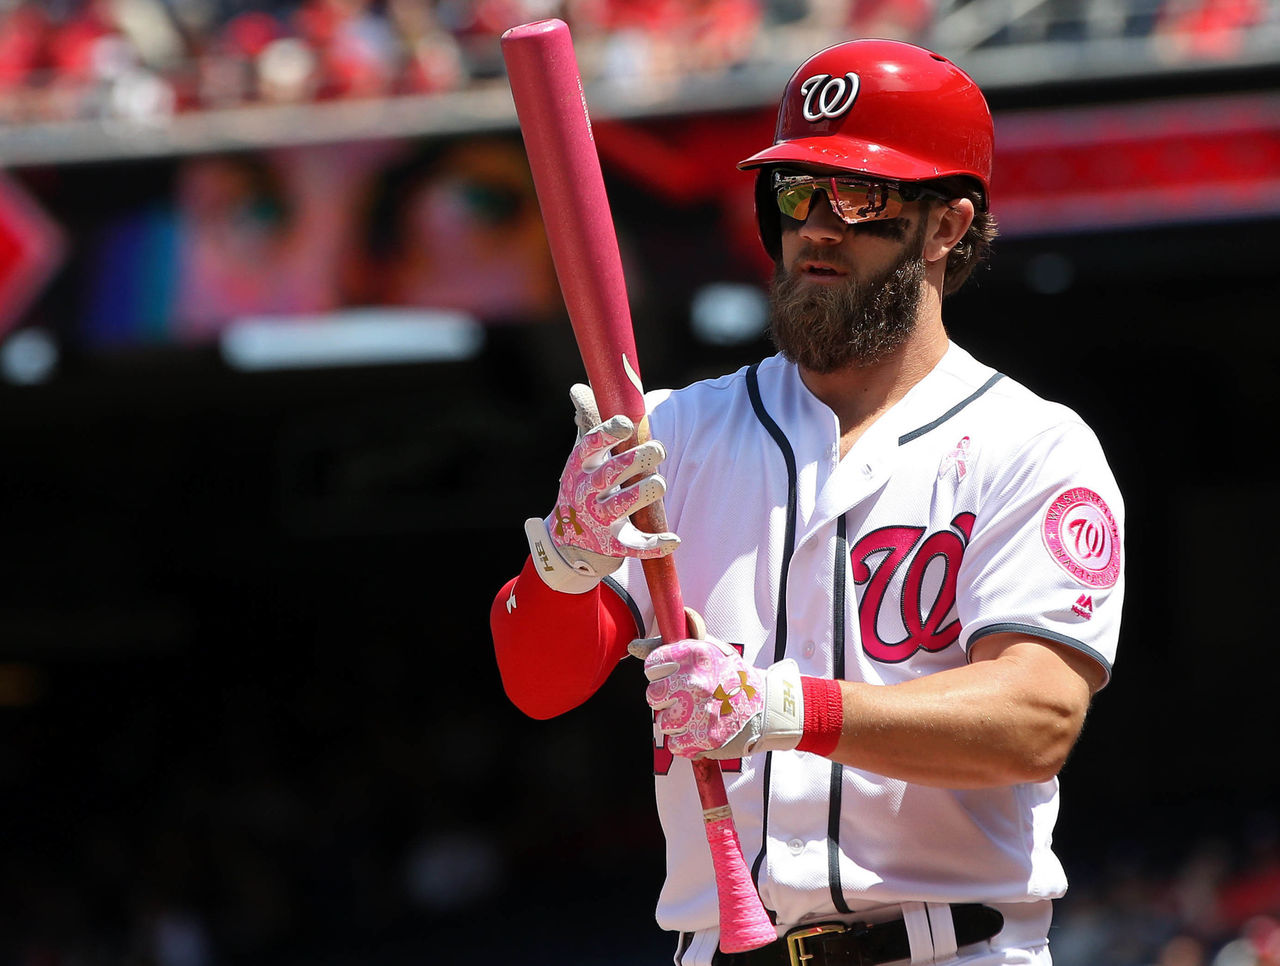 Cropped 2017 05 14t182635z 1878532700 nocid rtrmadp 3 mlb game 1 philadelphia phillies at washington nationals